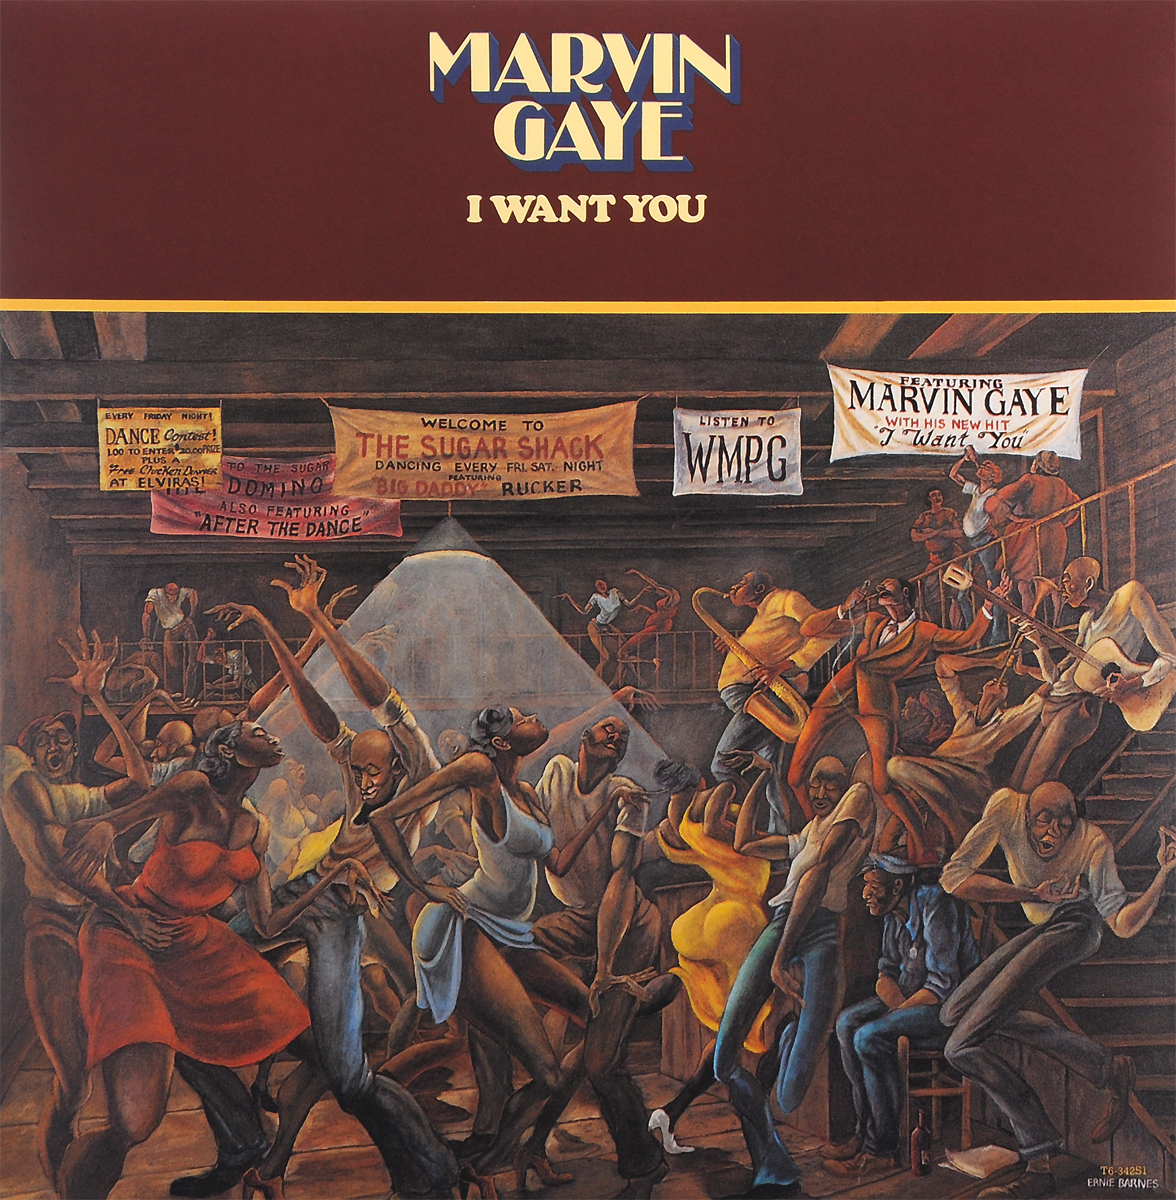 Марвин Гэй Marvin Gaye. I Want You (LP) марвин гэй marvin gaye trouble man motion picture soundtrack lp